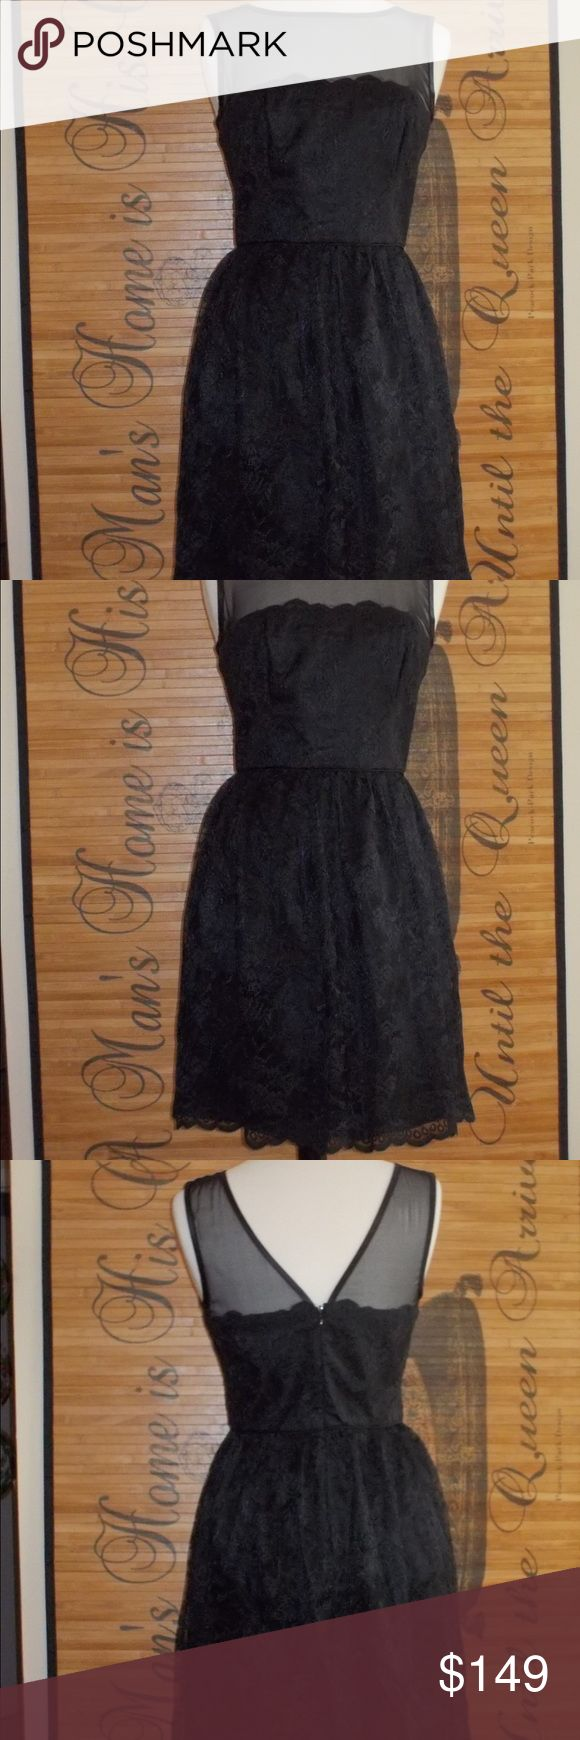 Trina Turk black lace dress Made in California 100% Polyester contrast 1: 100% silk contrast 2: 100% silk Lining: 100% Acetate Trina Turk Dresses Midi